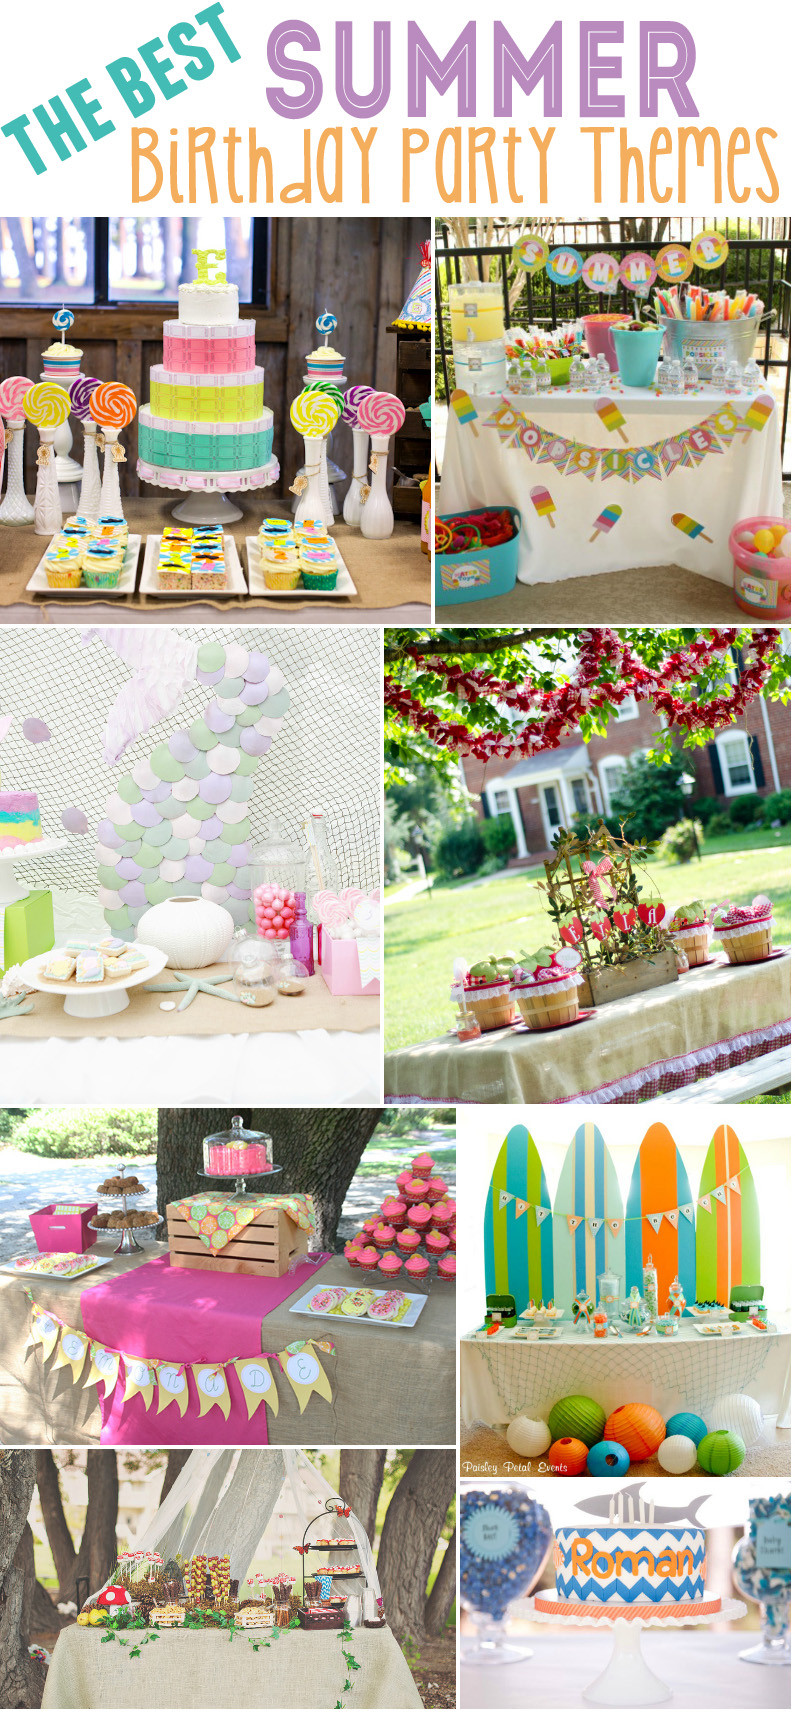 Summer Theme Party Ideas  15 Best Summer Birthday Party Themes Design Dazzle